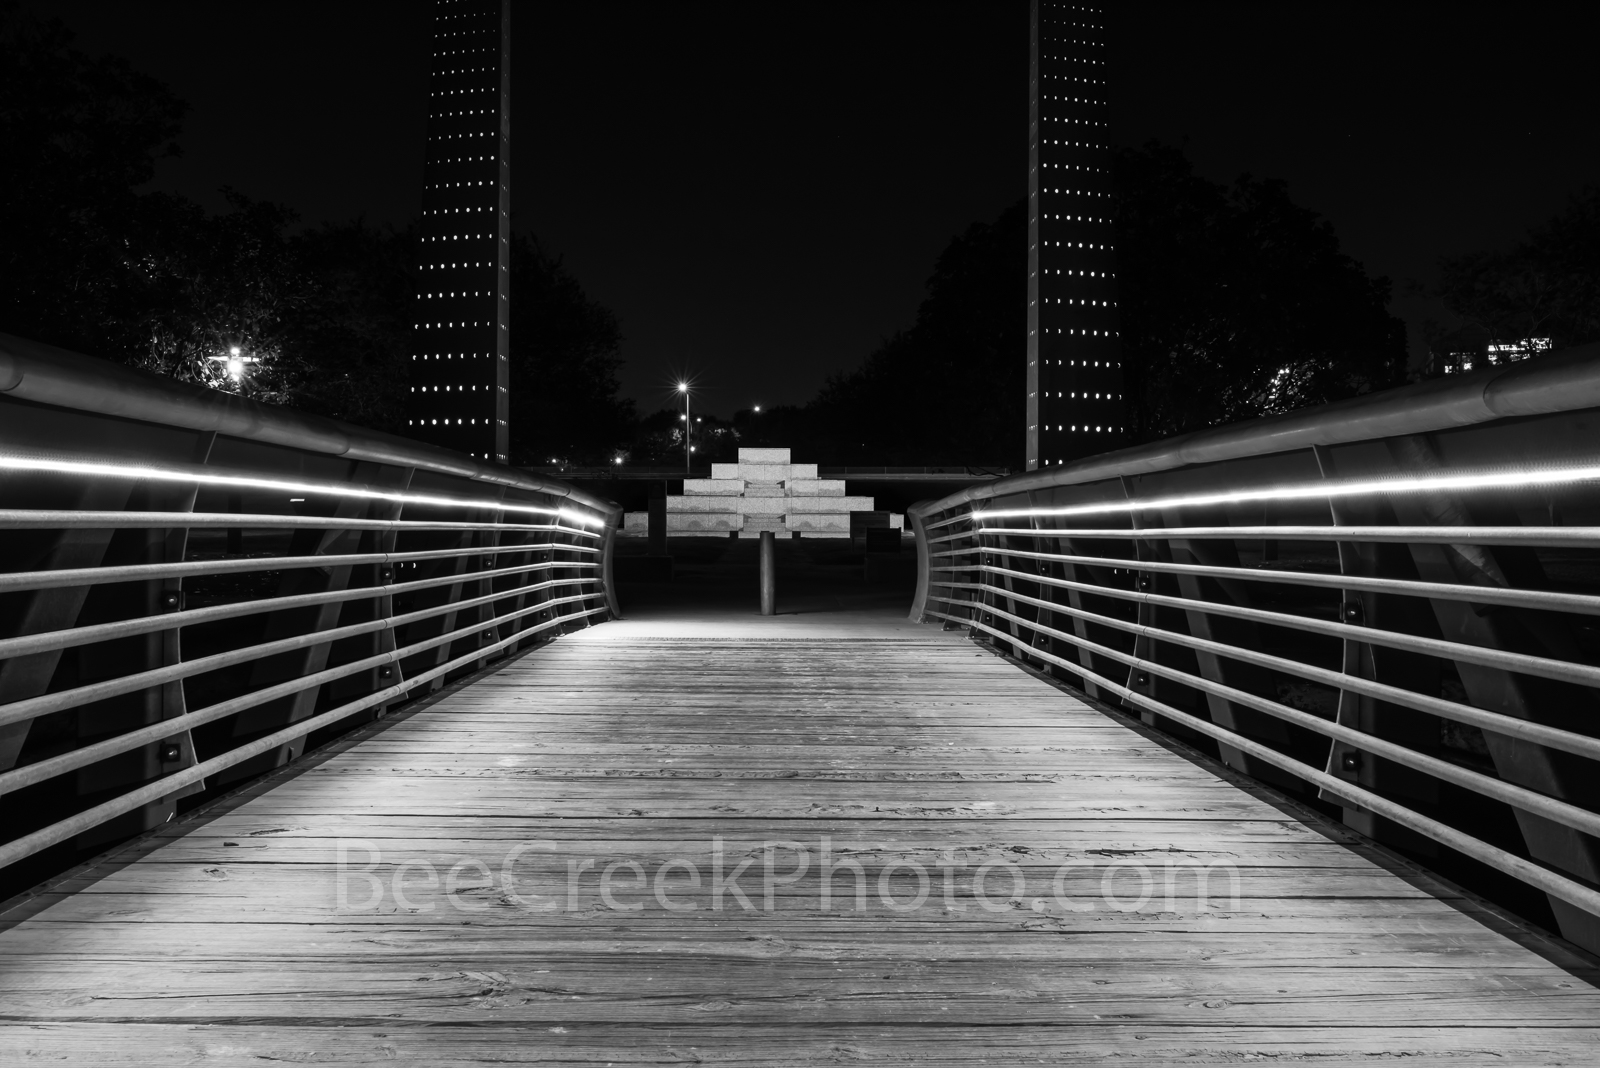 Houston, Crruth Pedestrian bridge, Houston Police Memorial, park, black and white, bw,, photo